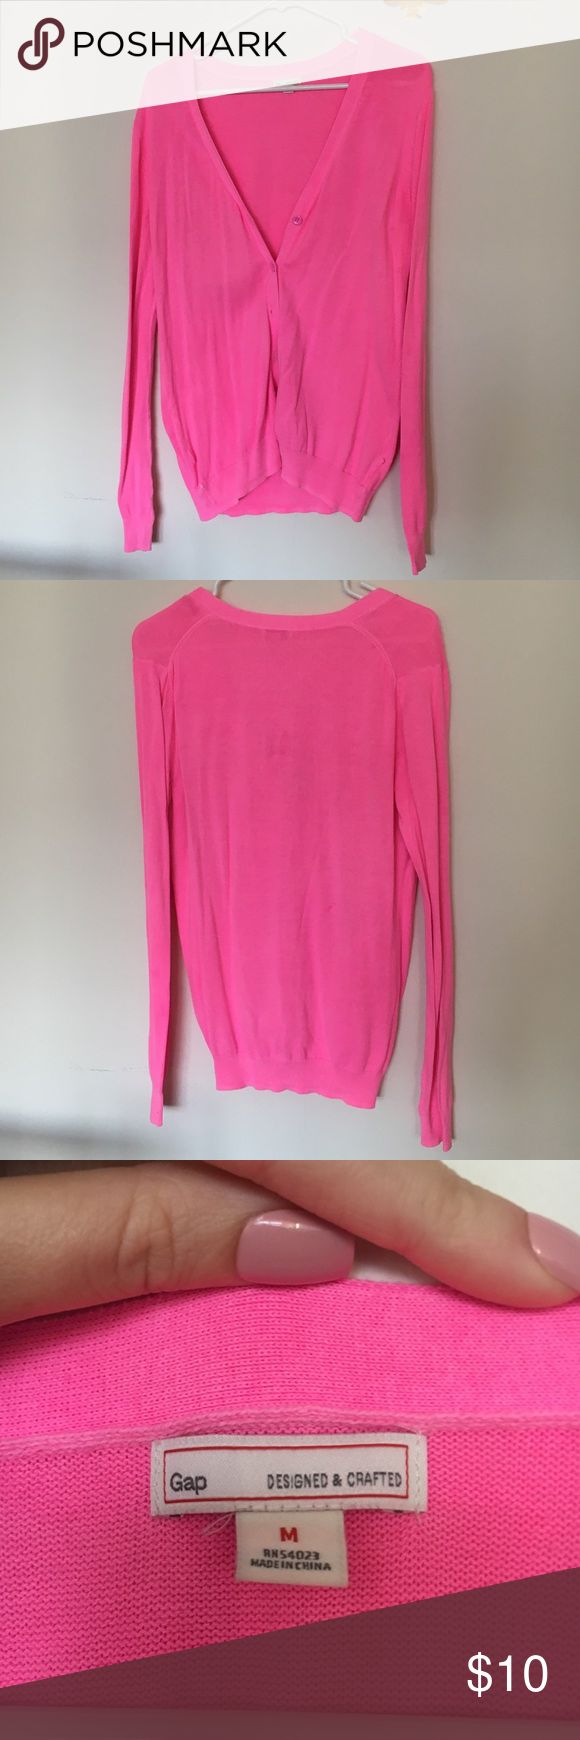 GAP pink cardigan GAP pink cardigan. Very light, very soft. A great staple for your closet for layering! In great condition, but notice there is a small mark on the back. Could come out in the wash, I have not tried. GAP Sweaters Cardigans